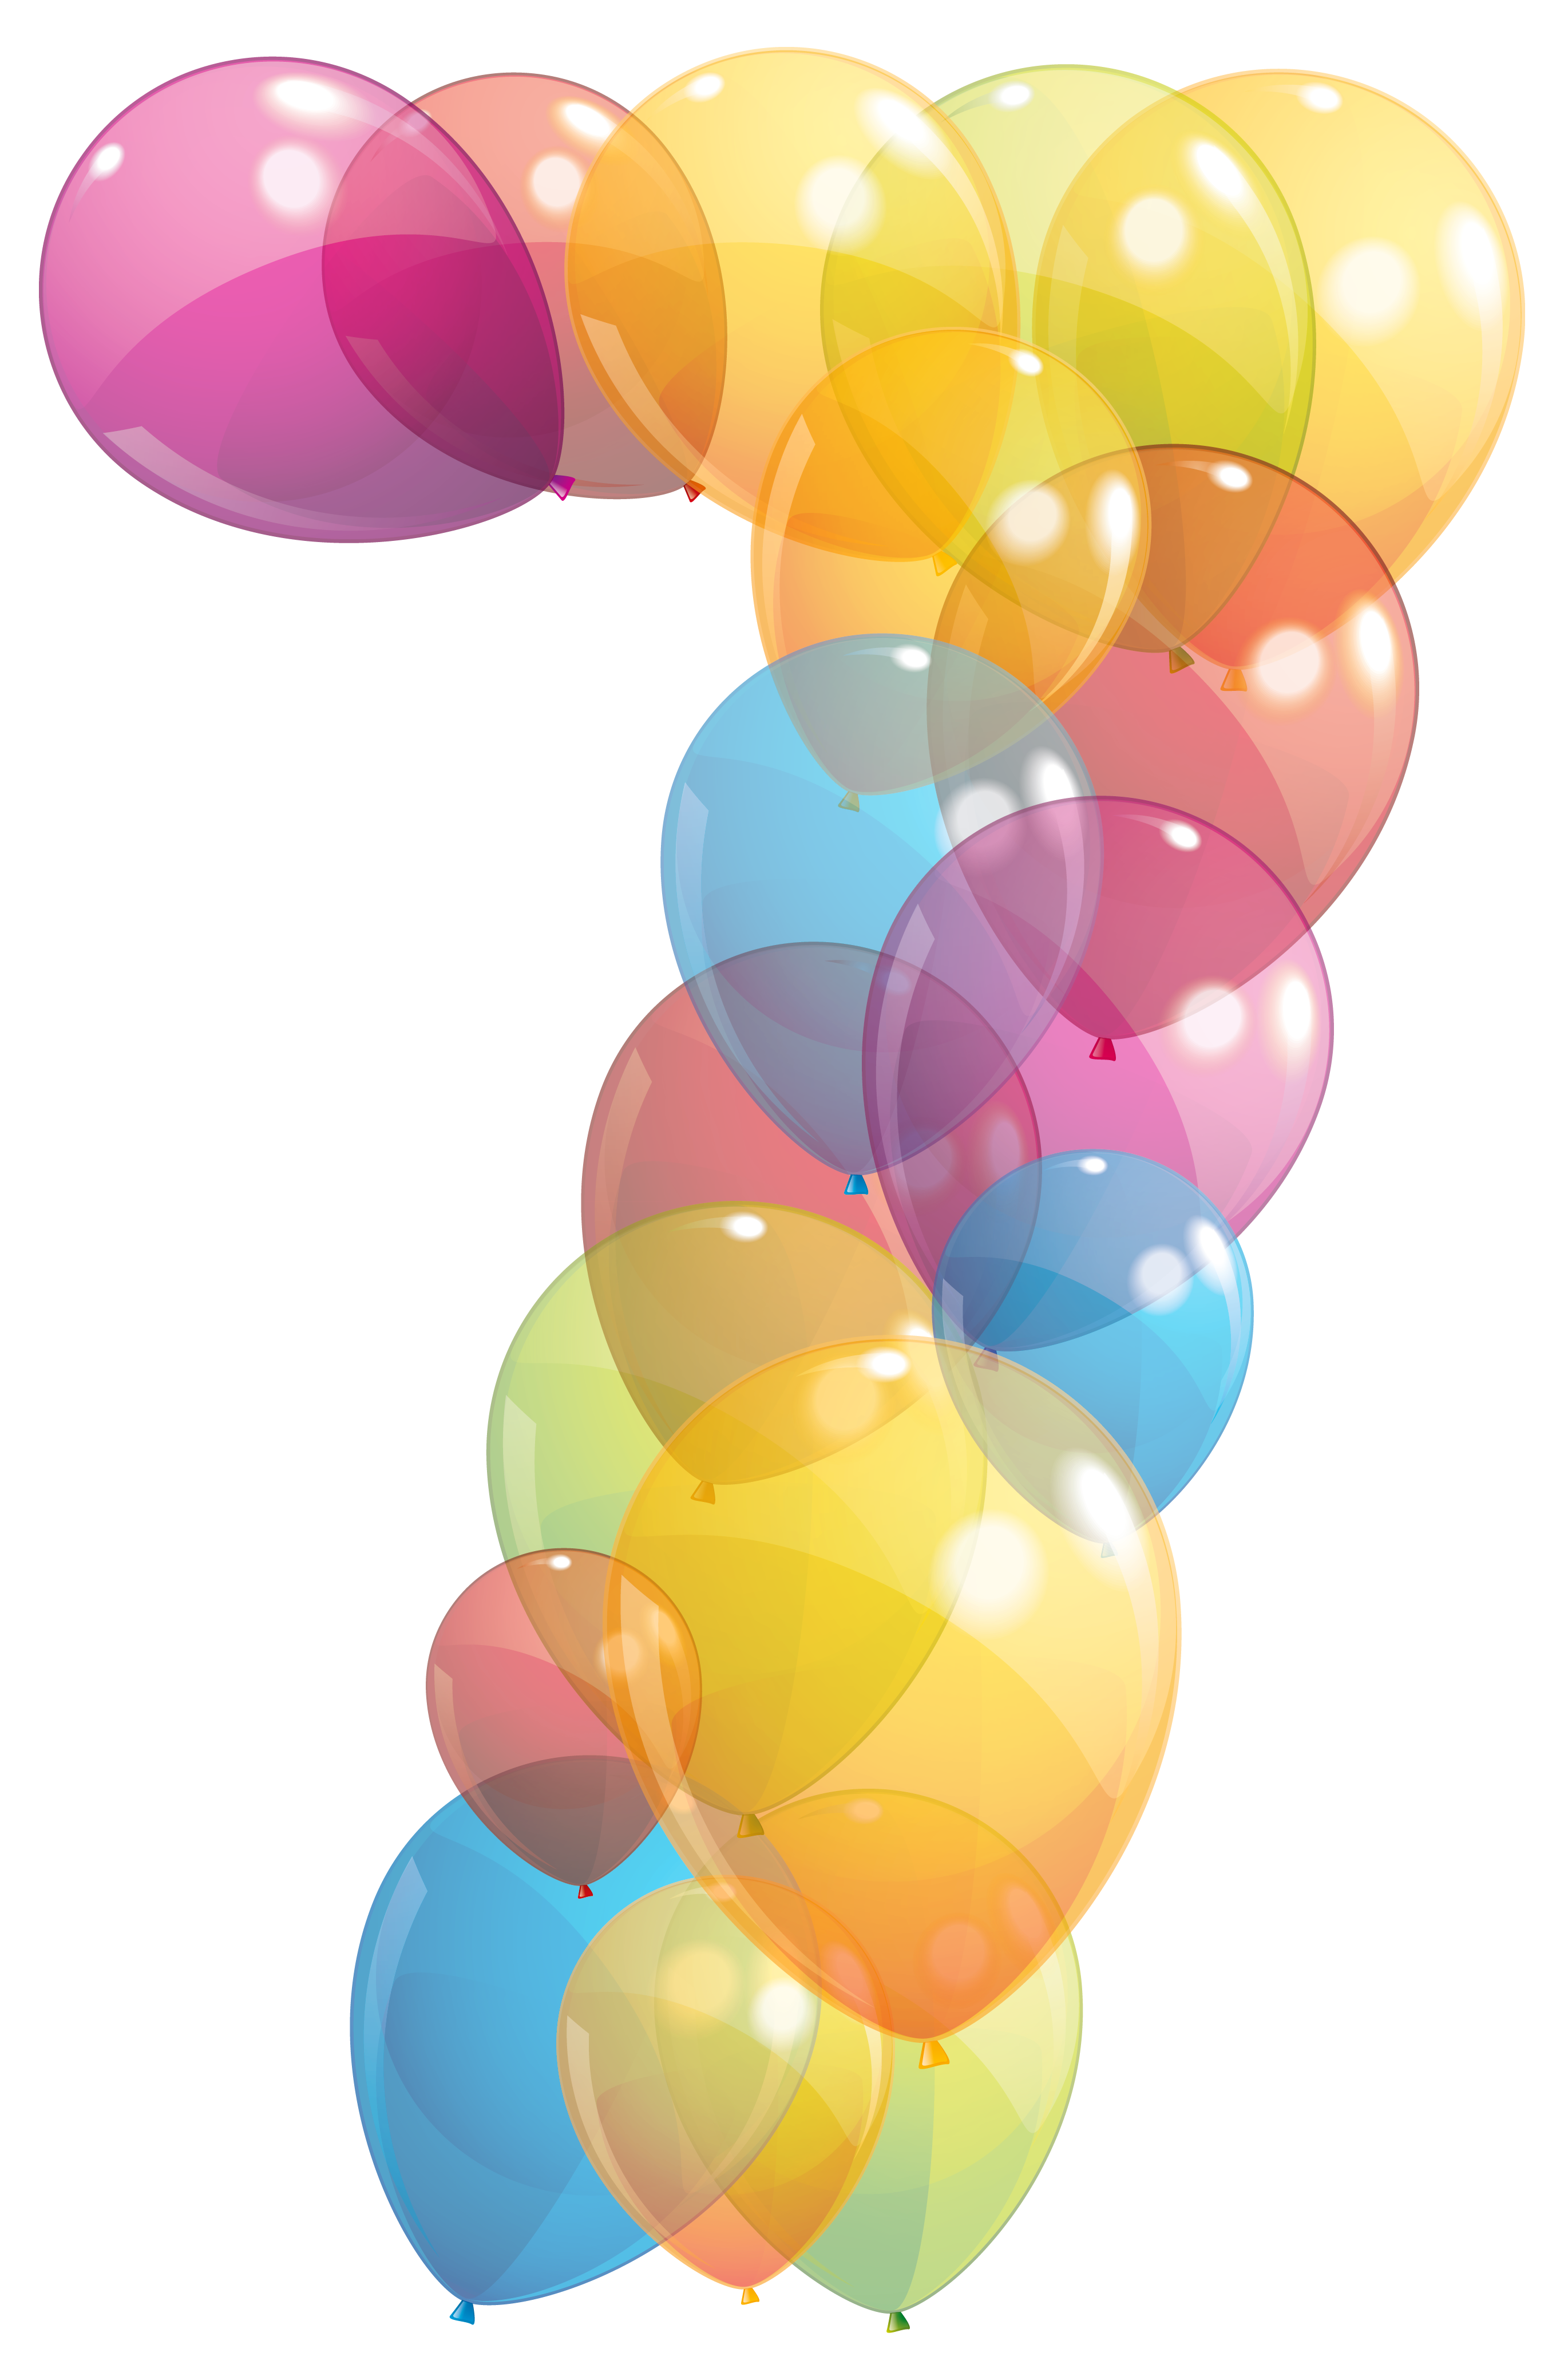 Transparent Seven Number of Balloons PNG Clipart Image.